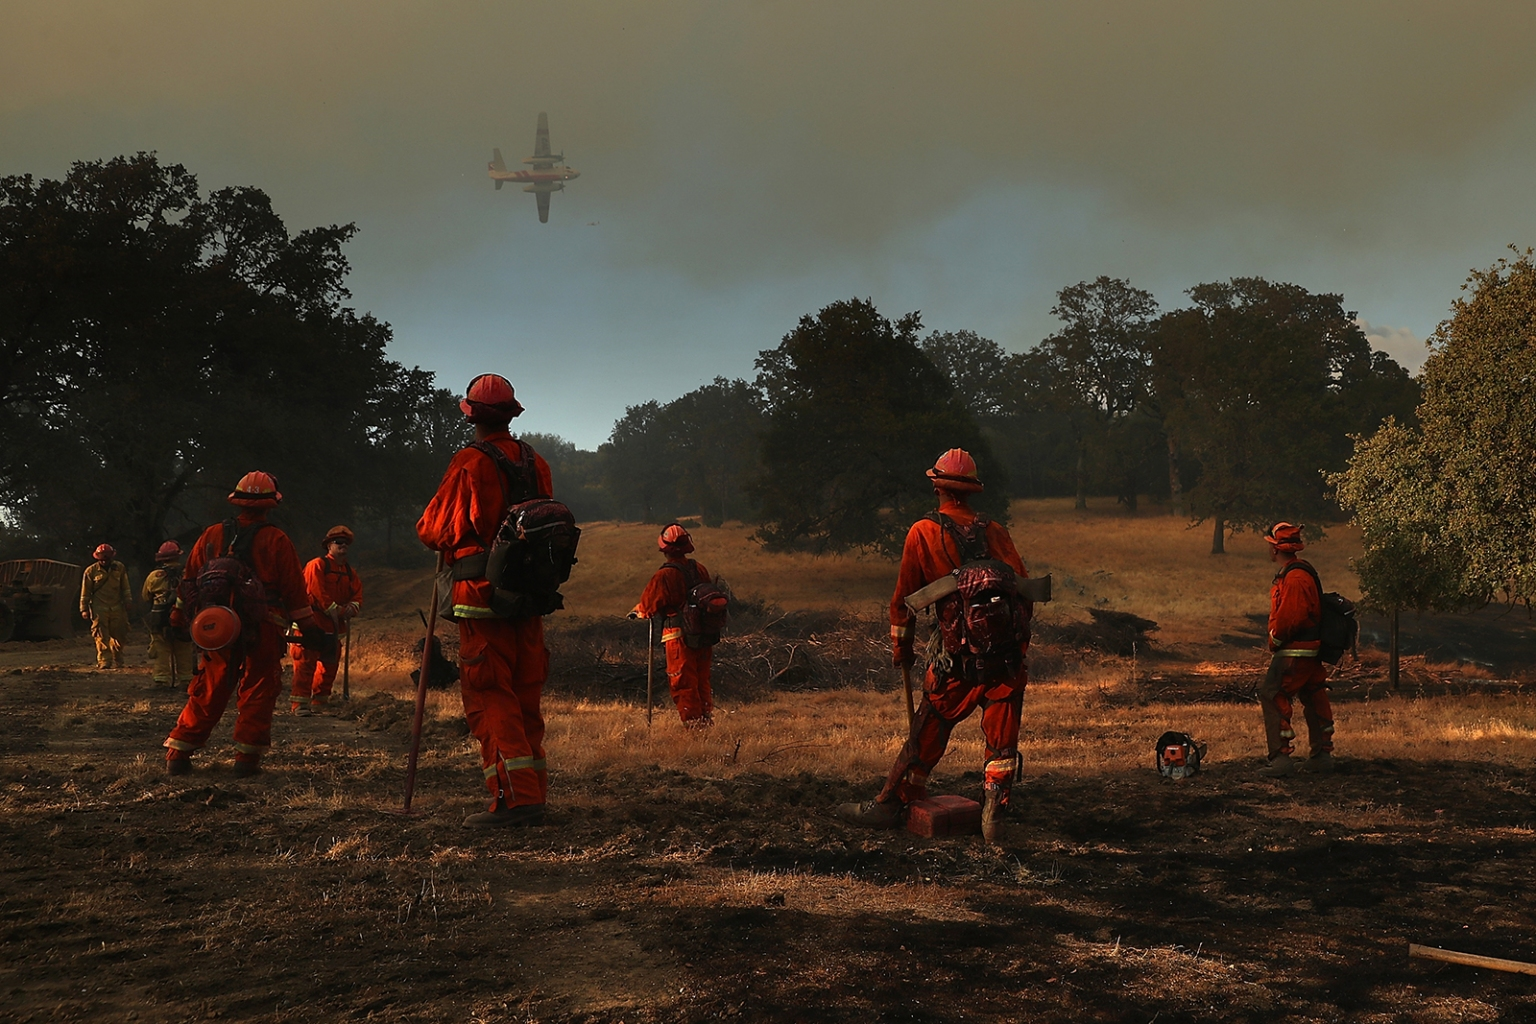 Inmate firefighters watch as an aircraft prepares to drop fire retardant ahead of the River Fire as it burns through a canyon in Lakeport, California, on Aug. 1. Justin Sullivan/Getty Images